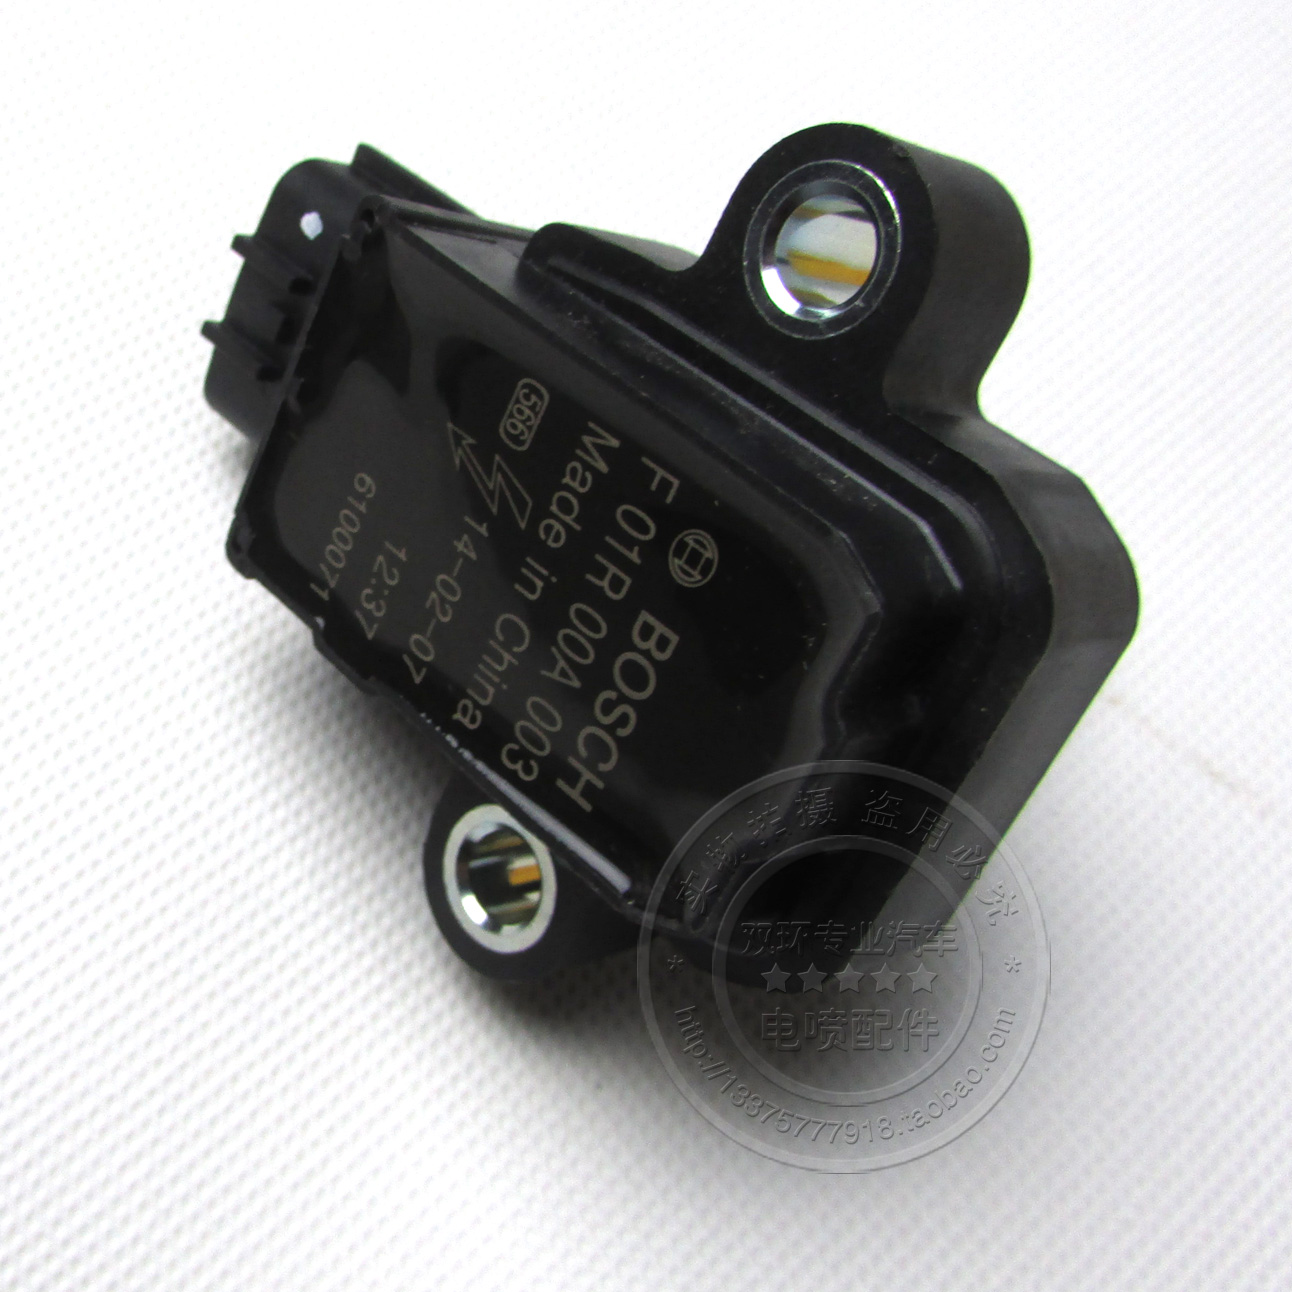 Free Delivery. Ignition <font><b>coil</b></font> N3 N5 A + <font><b>ID</b></font> F01R00A003 IGNITOR image